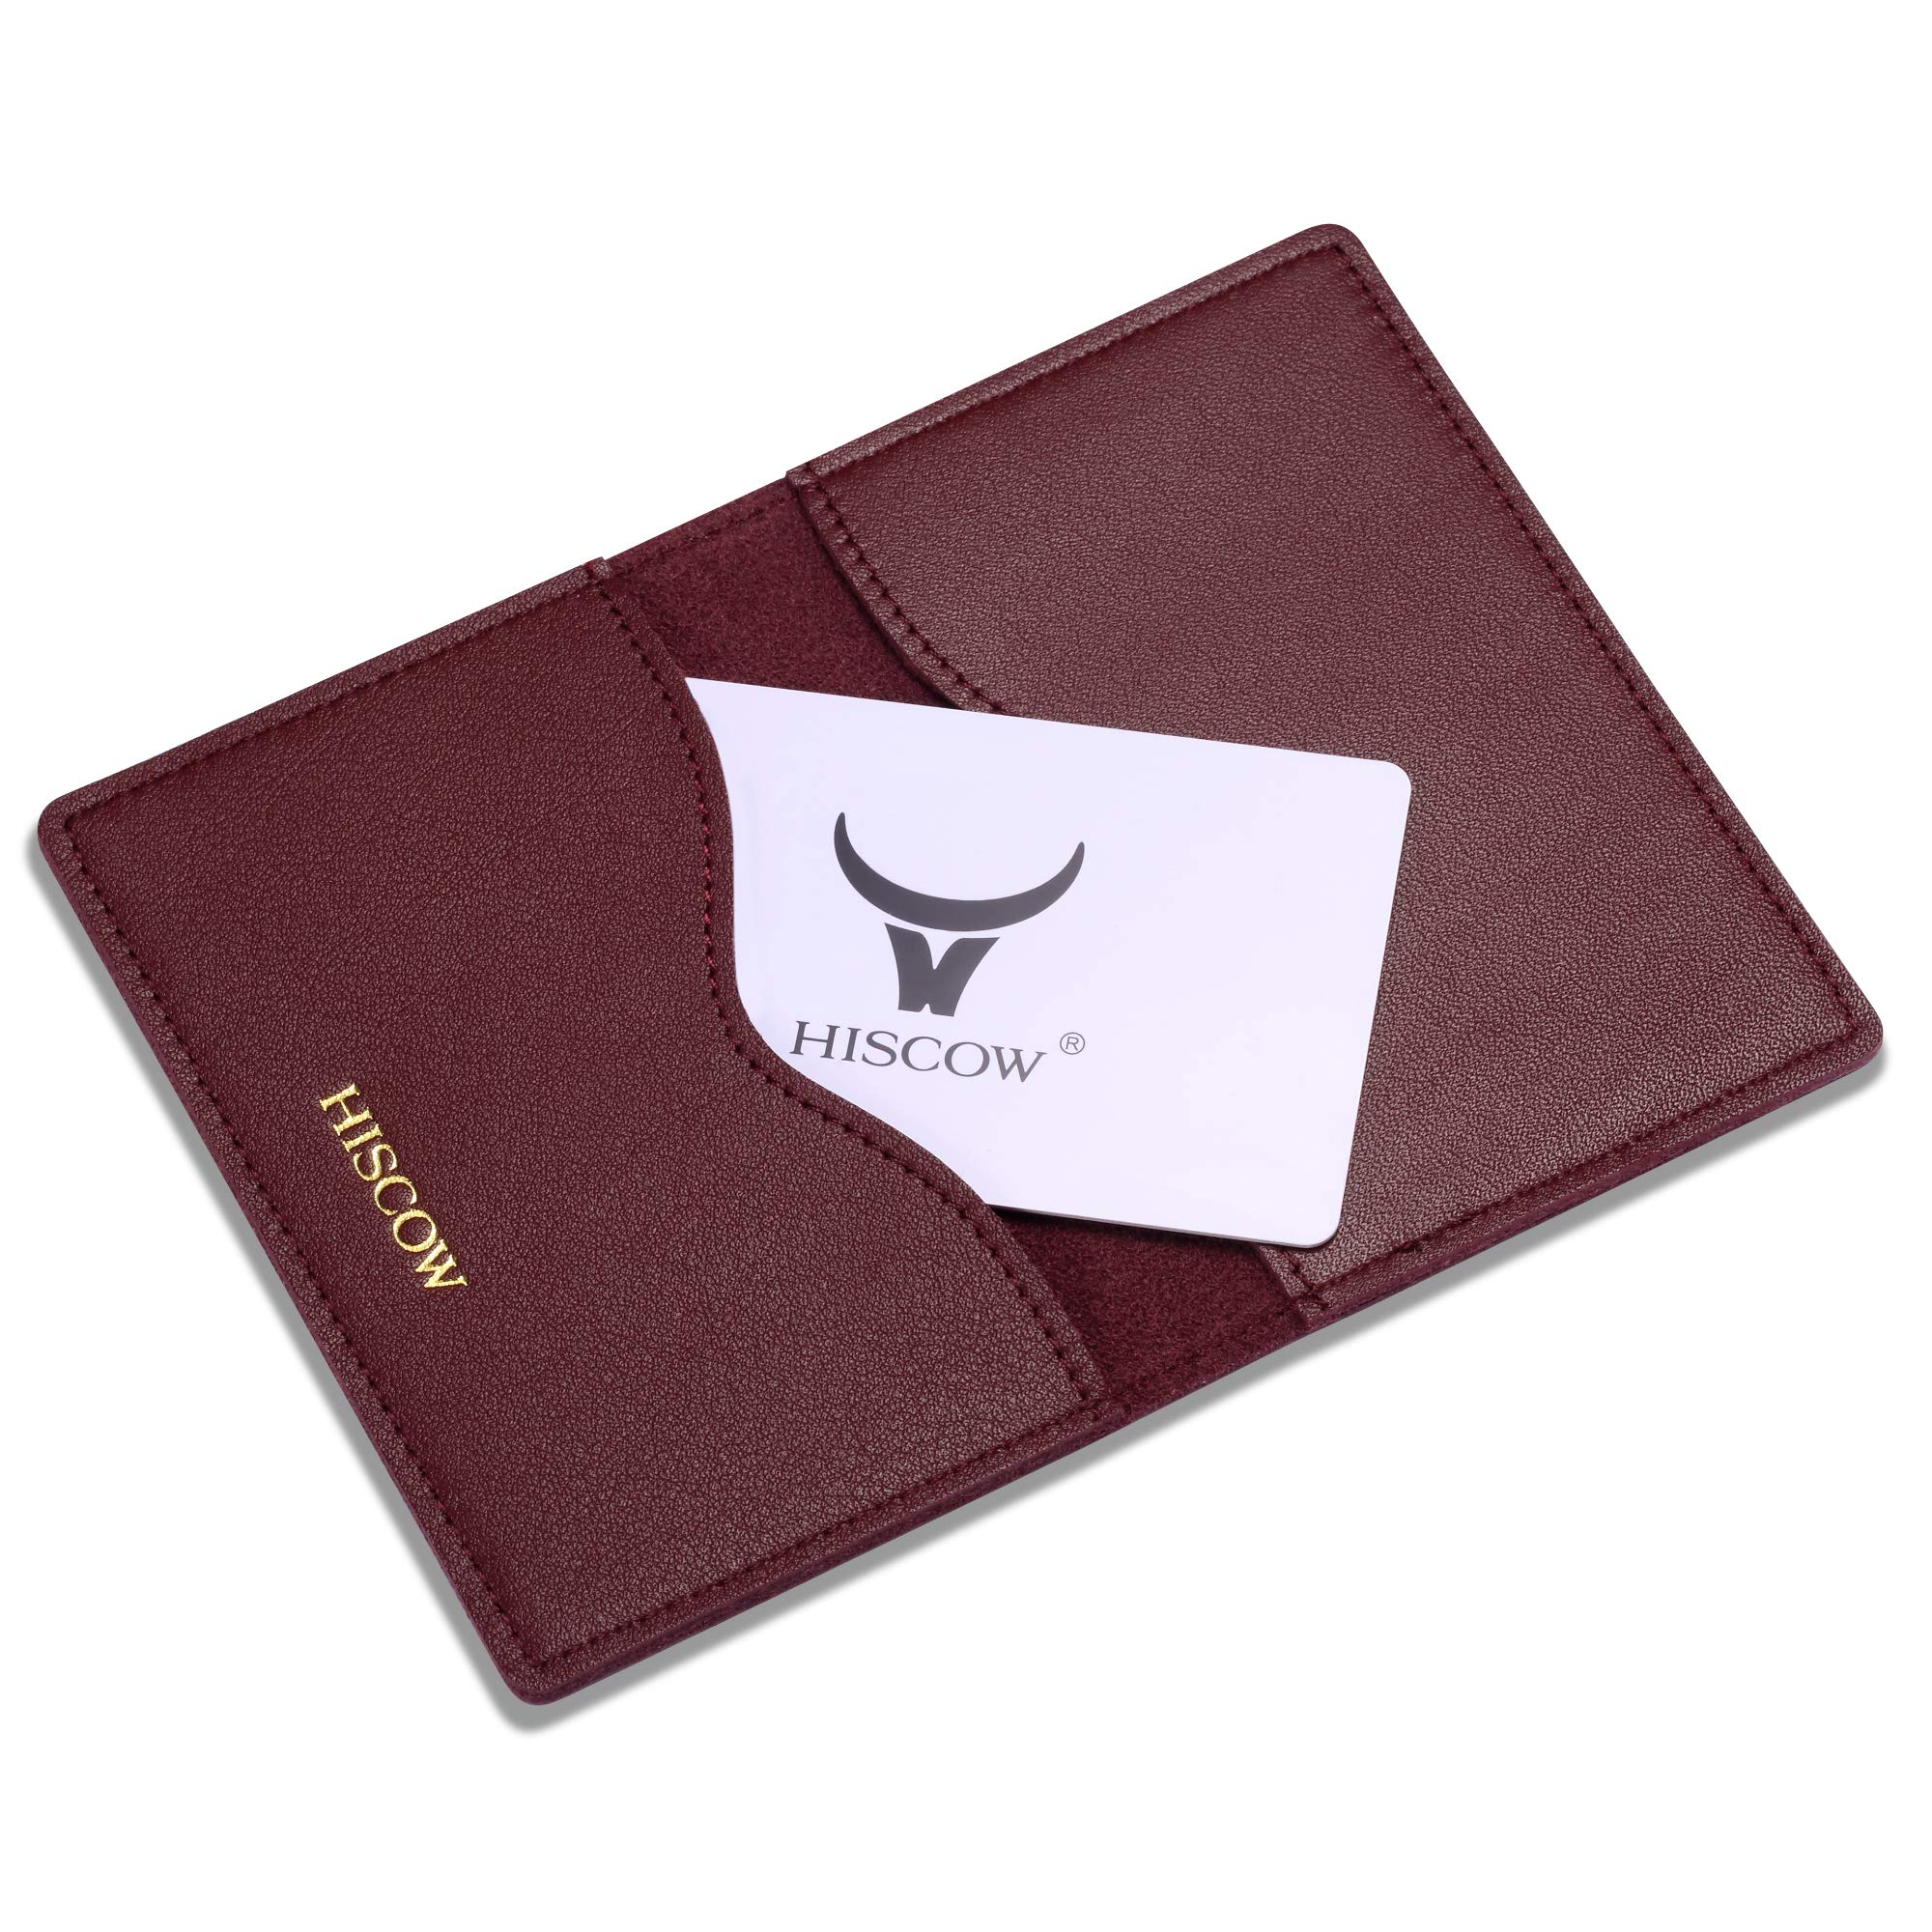 HISCOW Minimalist Thin Bifold Card Holder - Italian Calfskin (Bordeaux) by HISCOW (Image #6)